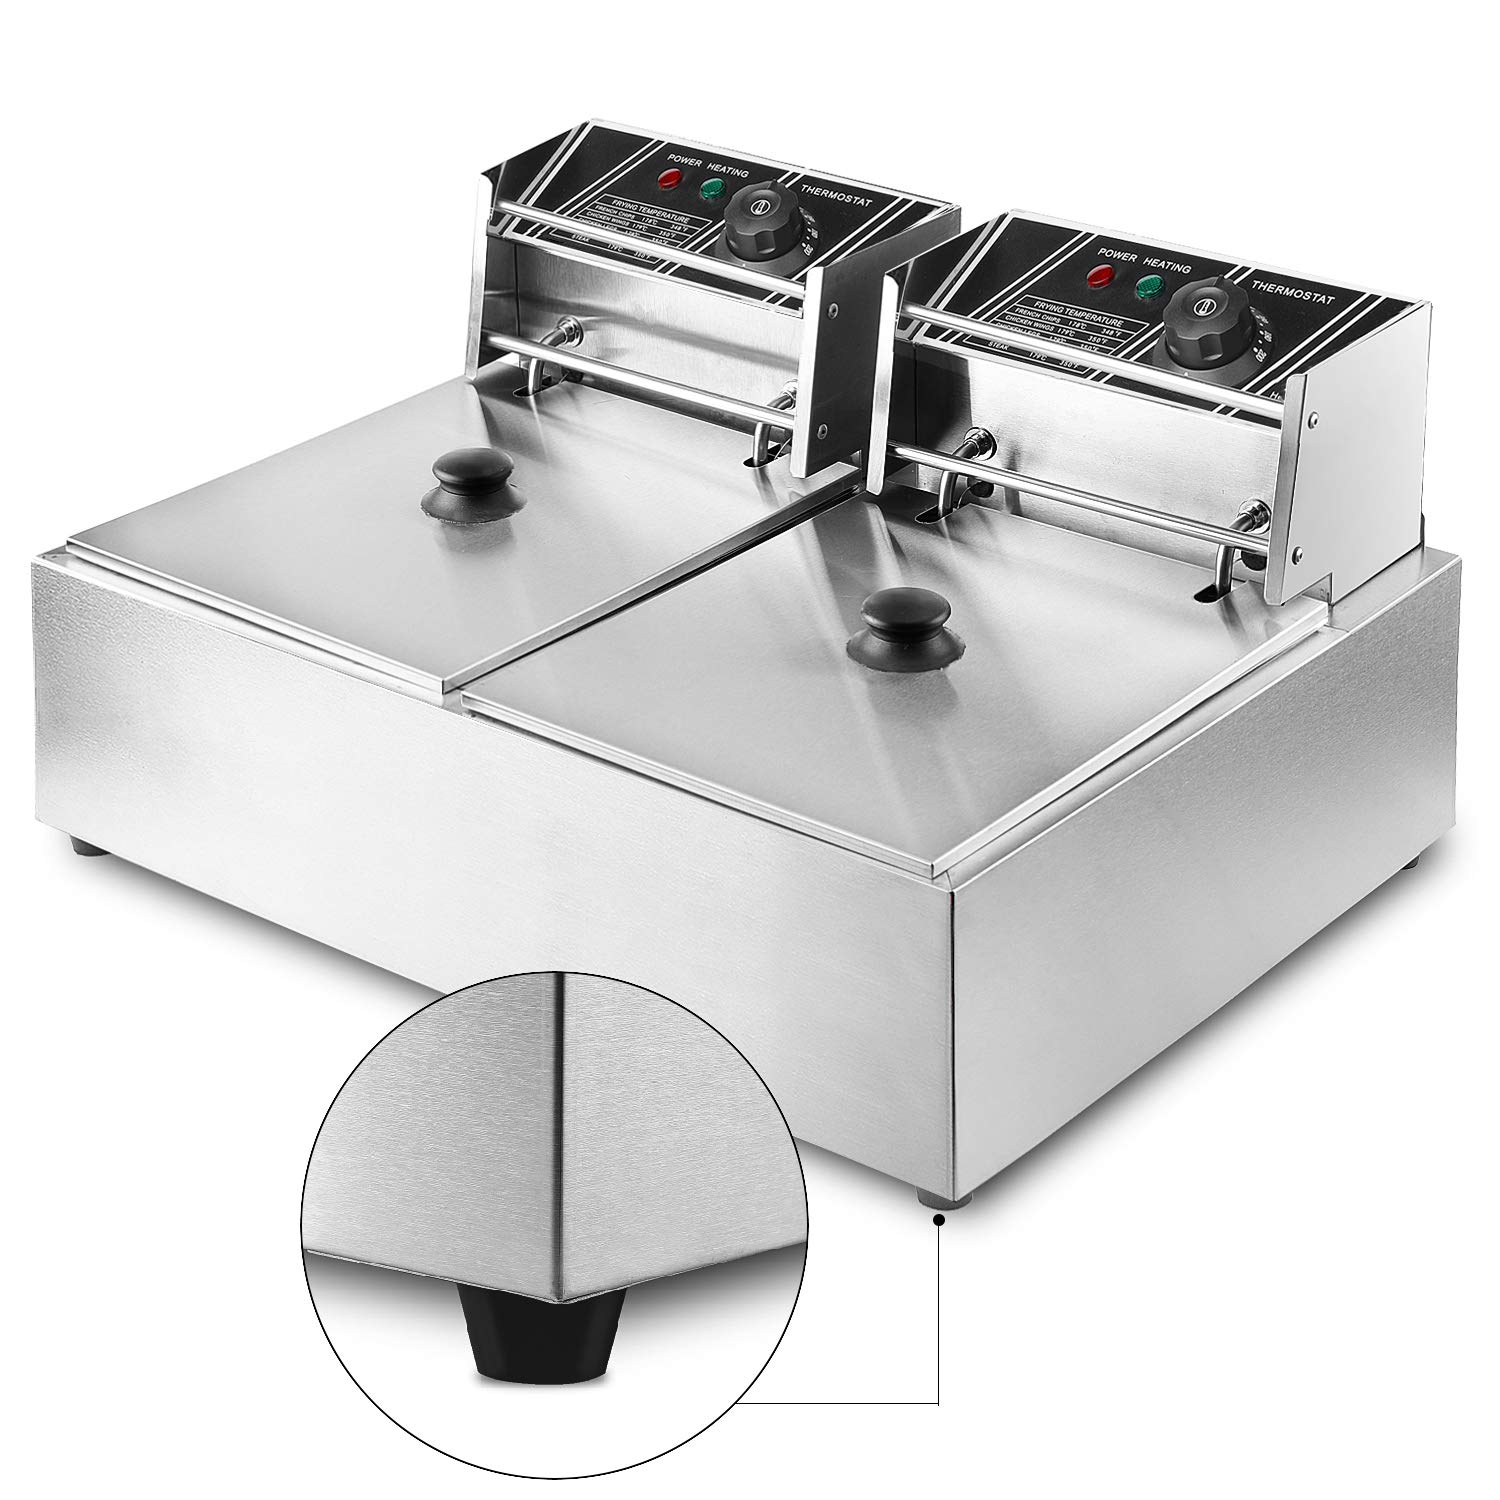 Flexzion Deep Fryer with Basket - Dual Tank 5000W 12 Liter Stainless Steel Electric Countertop Double Basket Scoop Fryer for Commercial Professional Restaurant Kitchen w/Adjustable Temperature by Flexzion (Image #3)